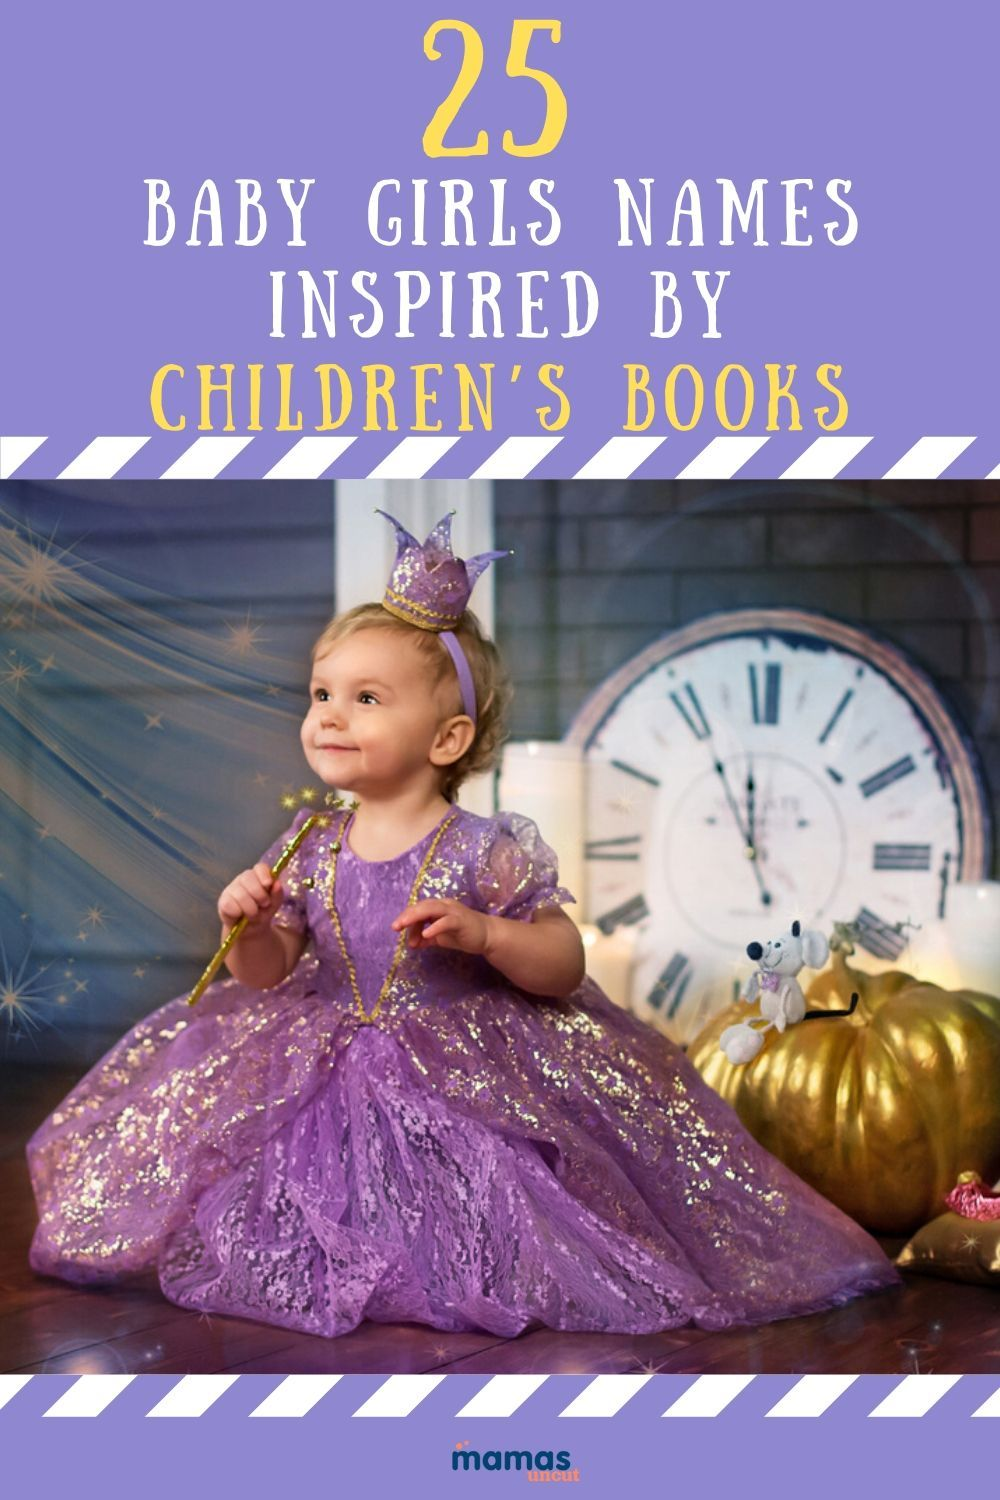 From Amelia Bedelia to Willa of the Wood, we've chosen our favorite baby names for girls inspired by the most beloved children's stories ever told.#babynames #girlnames #childrensbooks